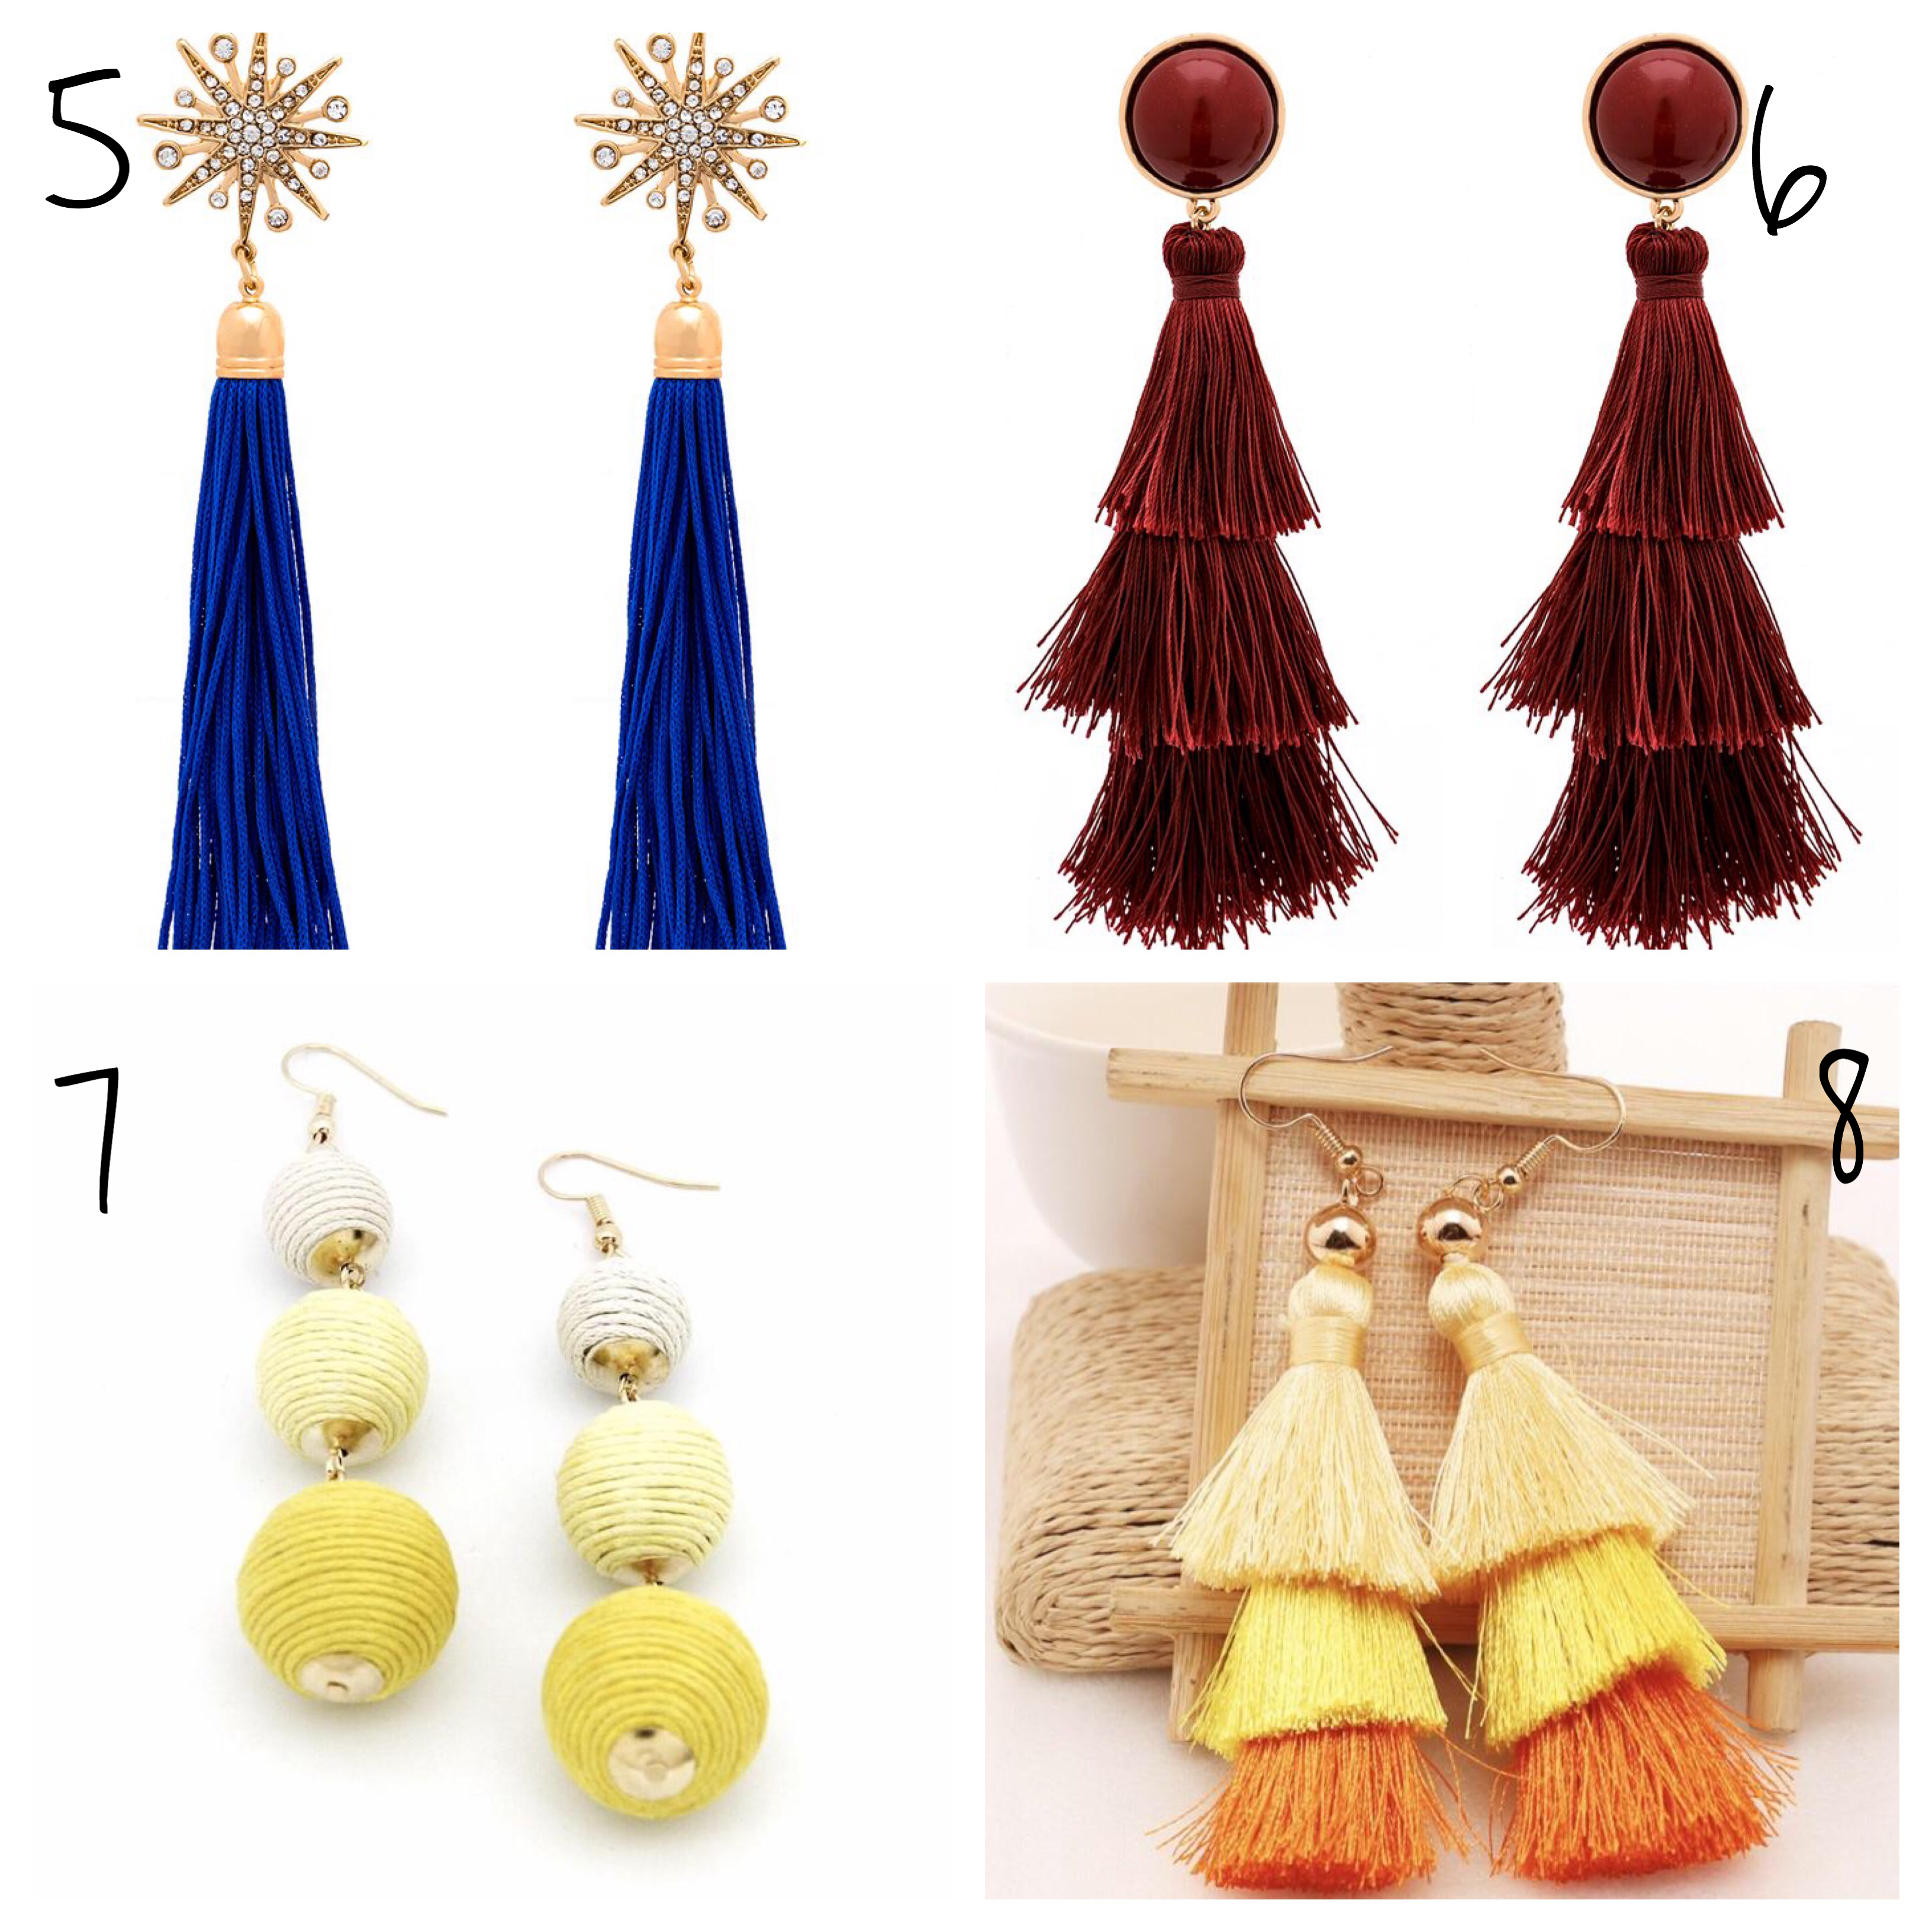 Tassel earrings and drop earrings affordable fashion